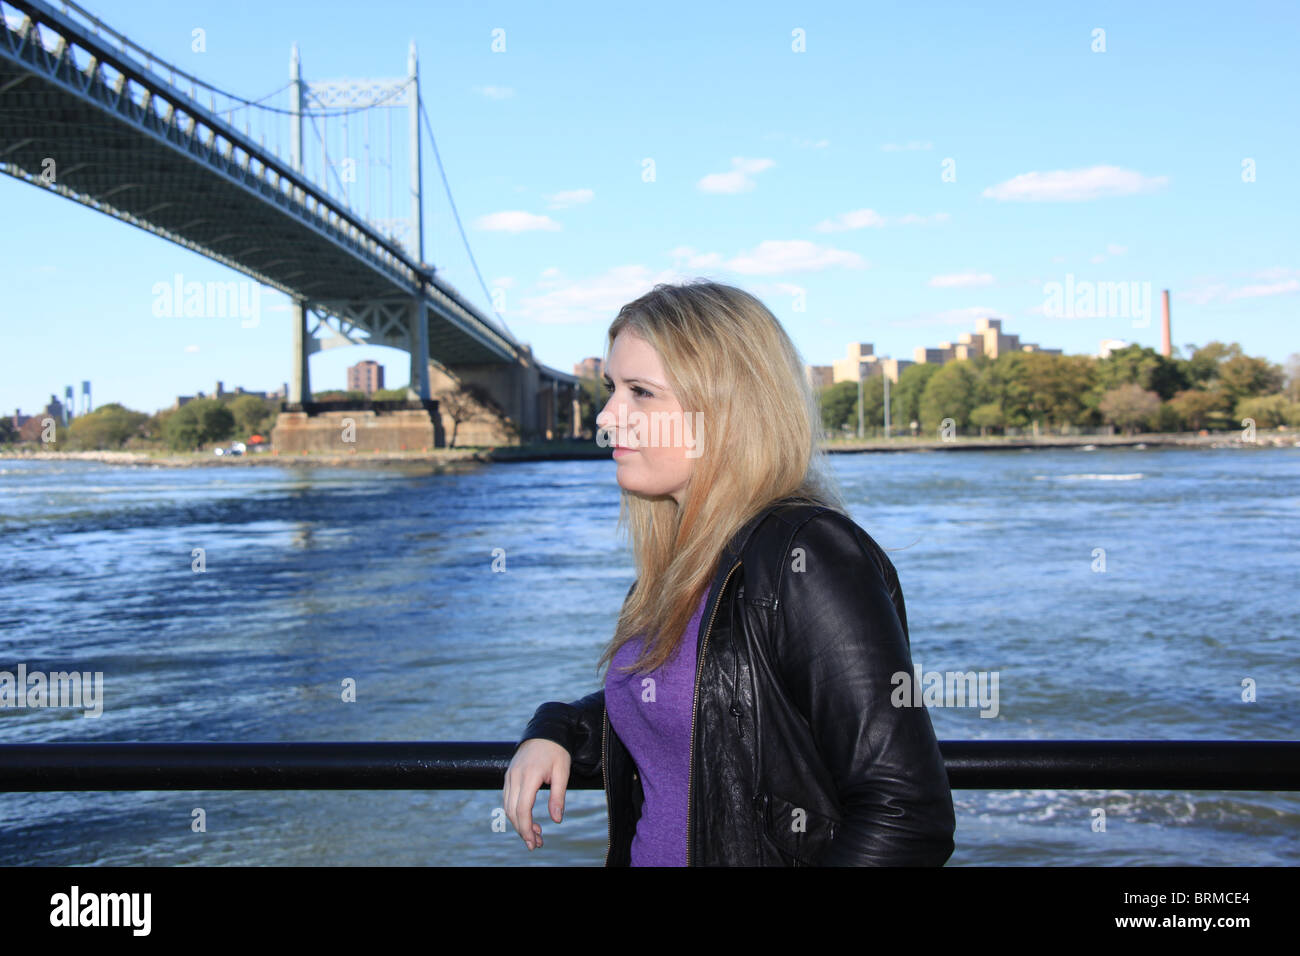 Attractive young blonde woman standing near Triboro Bridge along the East River in New York City, October 2, 2010 - Stock Image